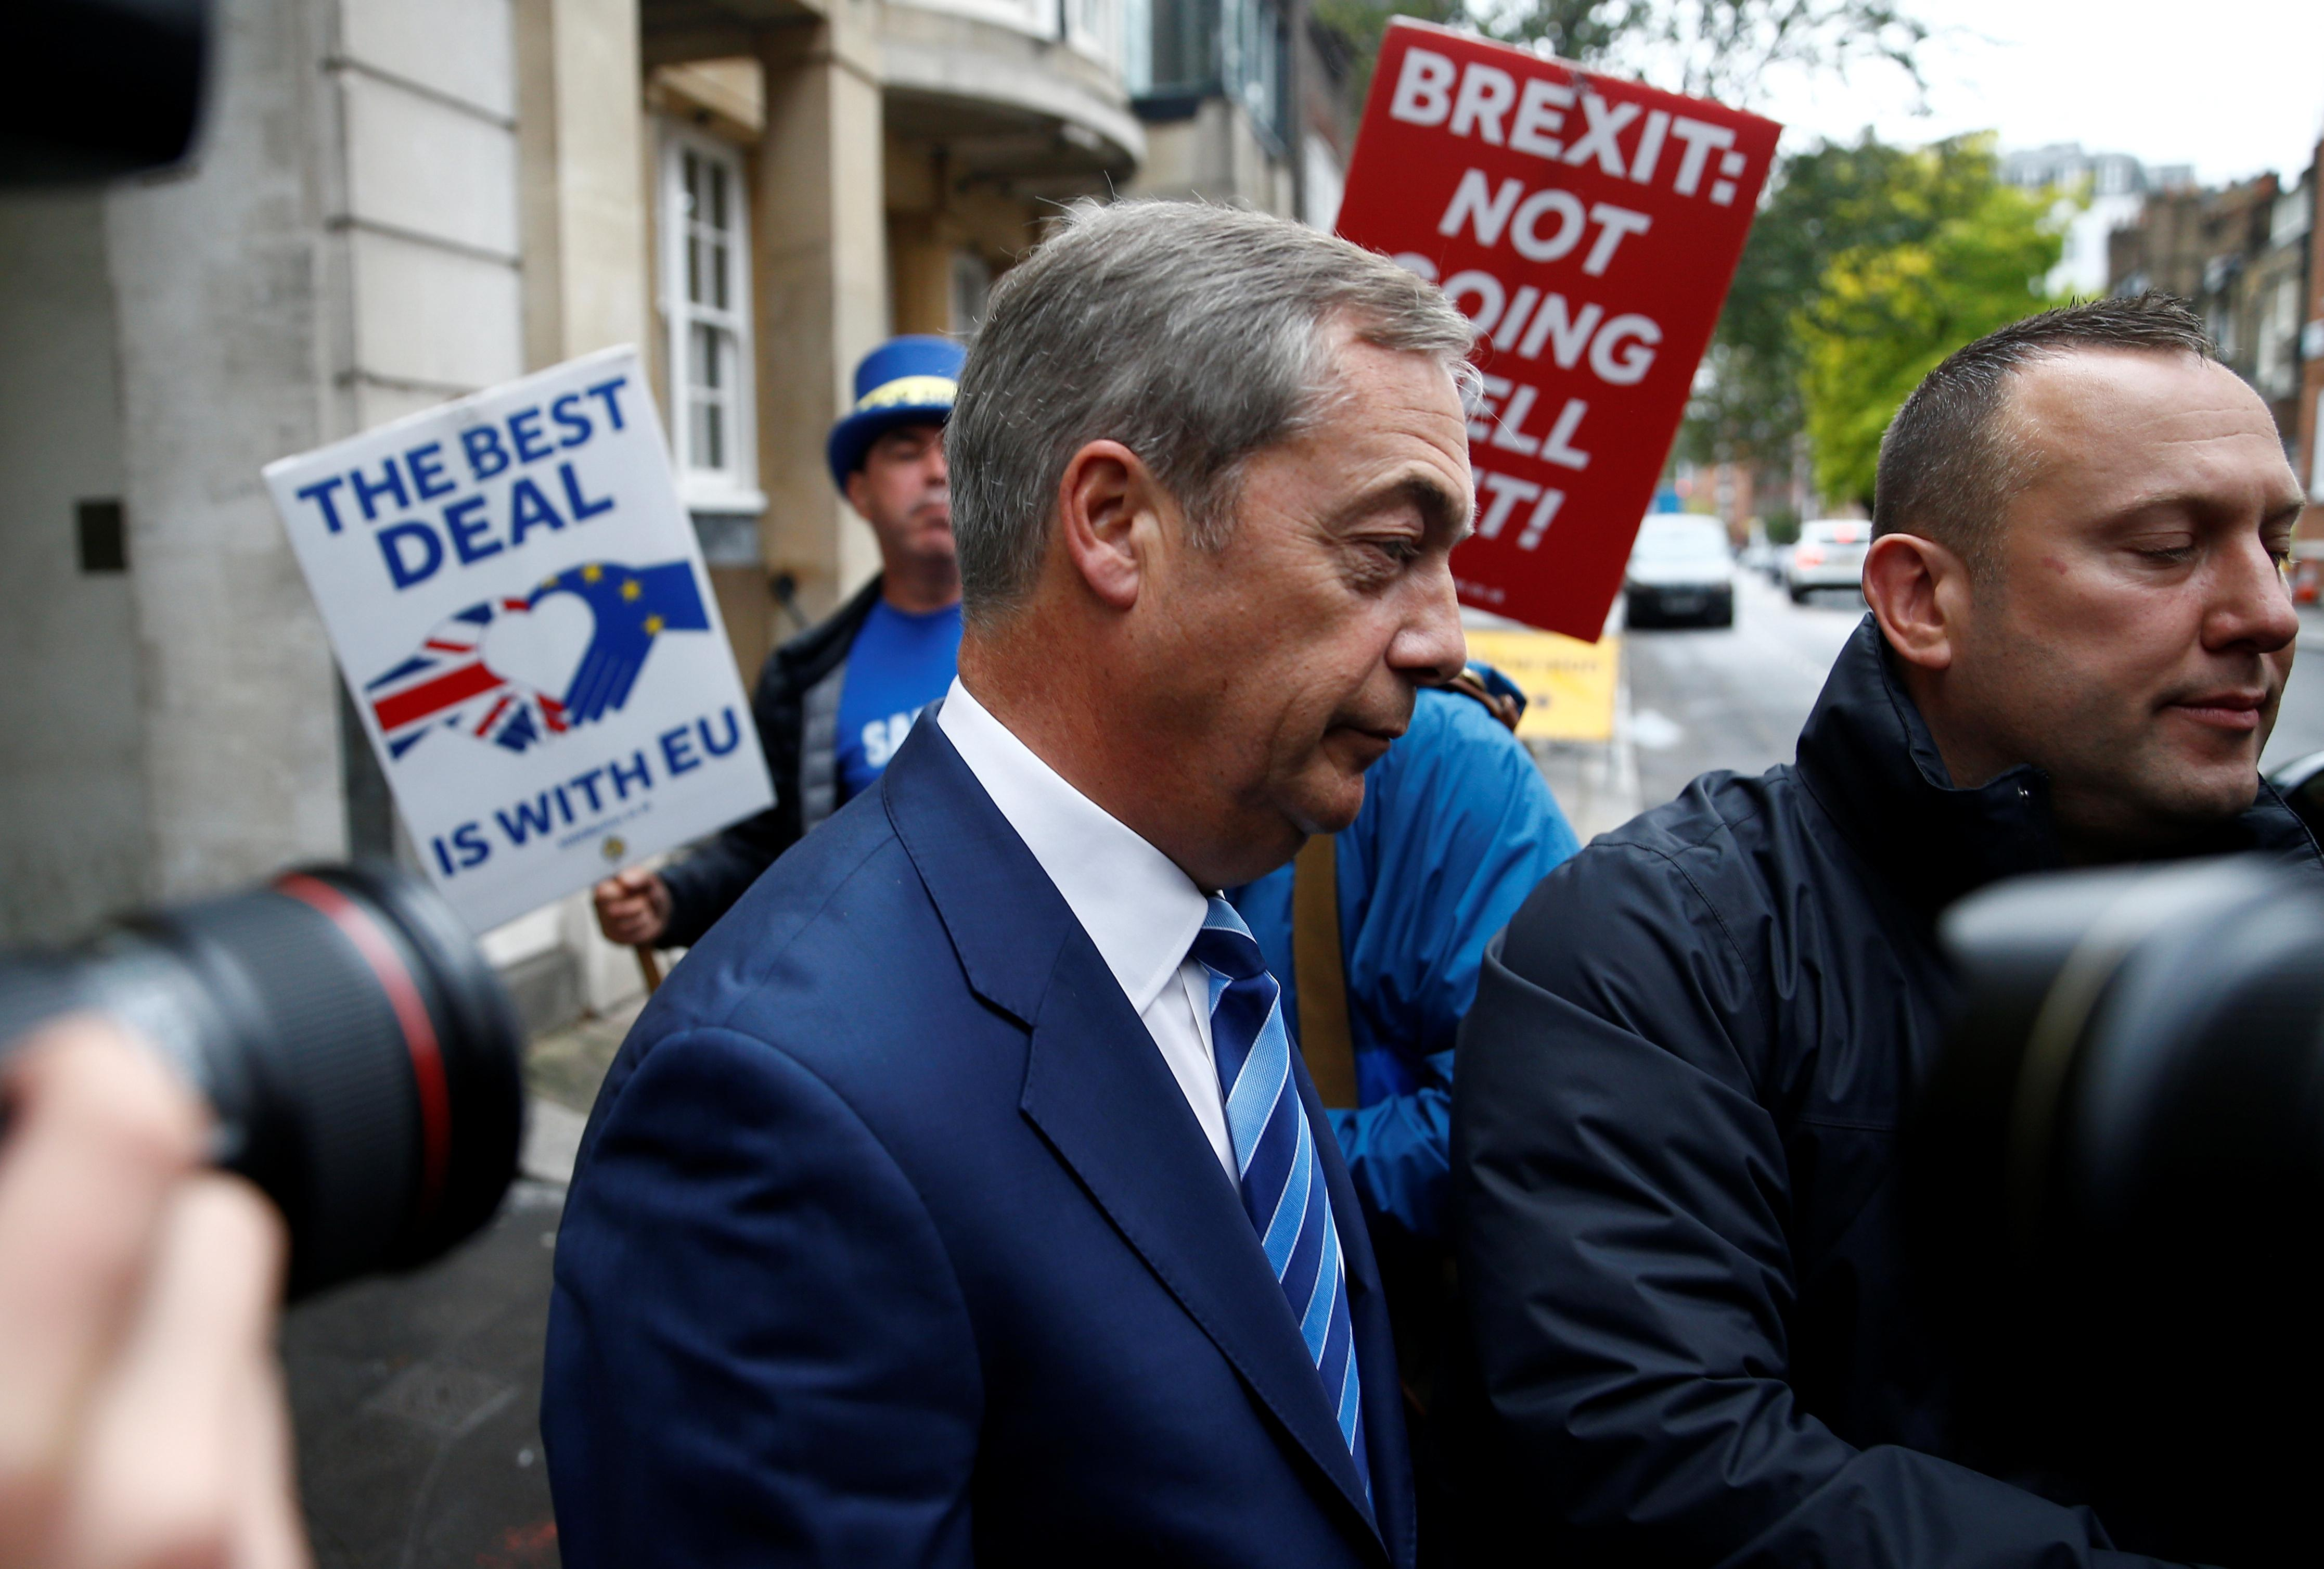 Brexit delay and election better than Johnson's deal - Farage